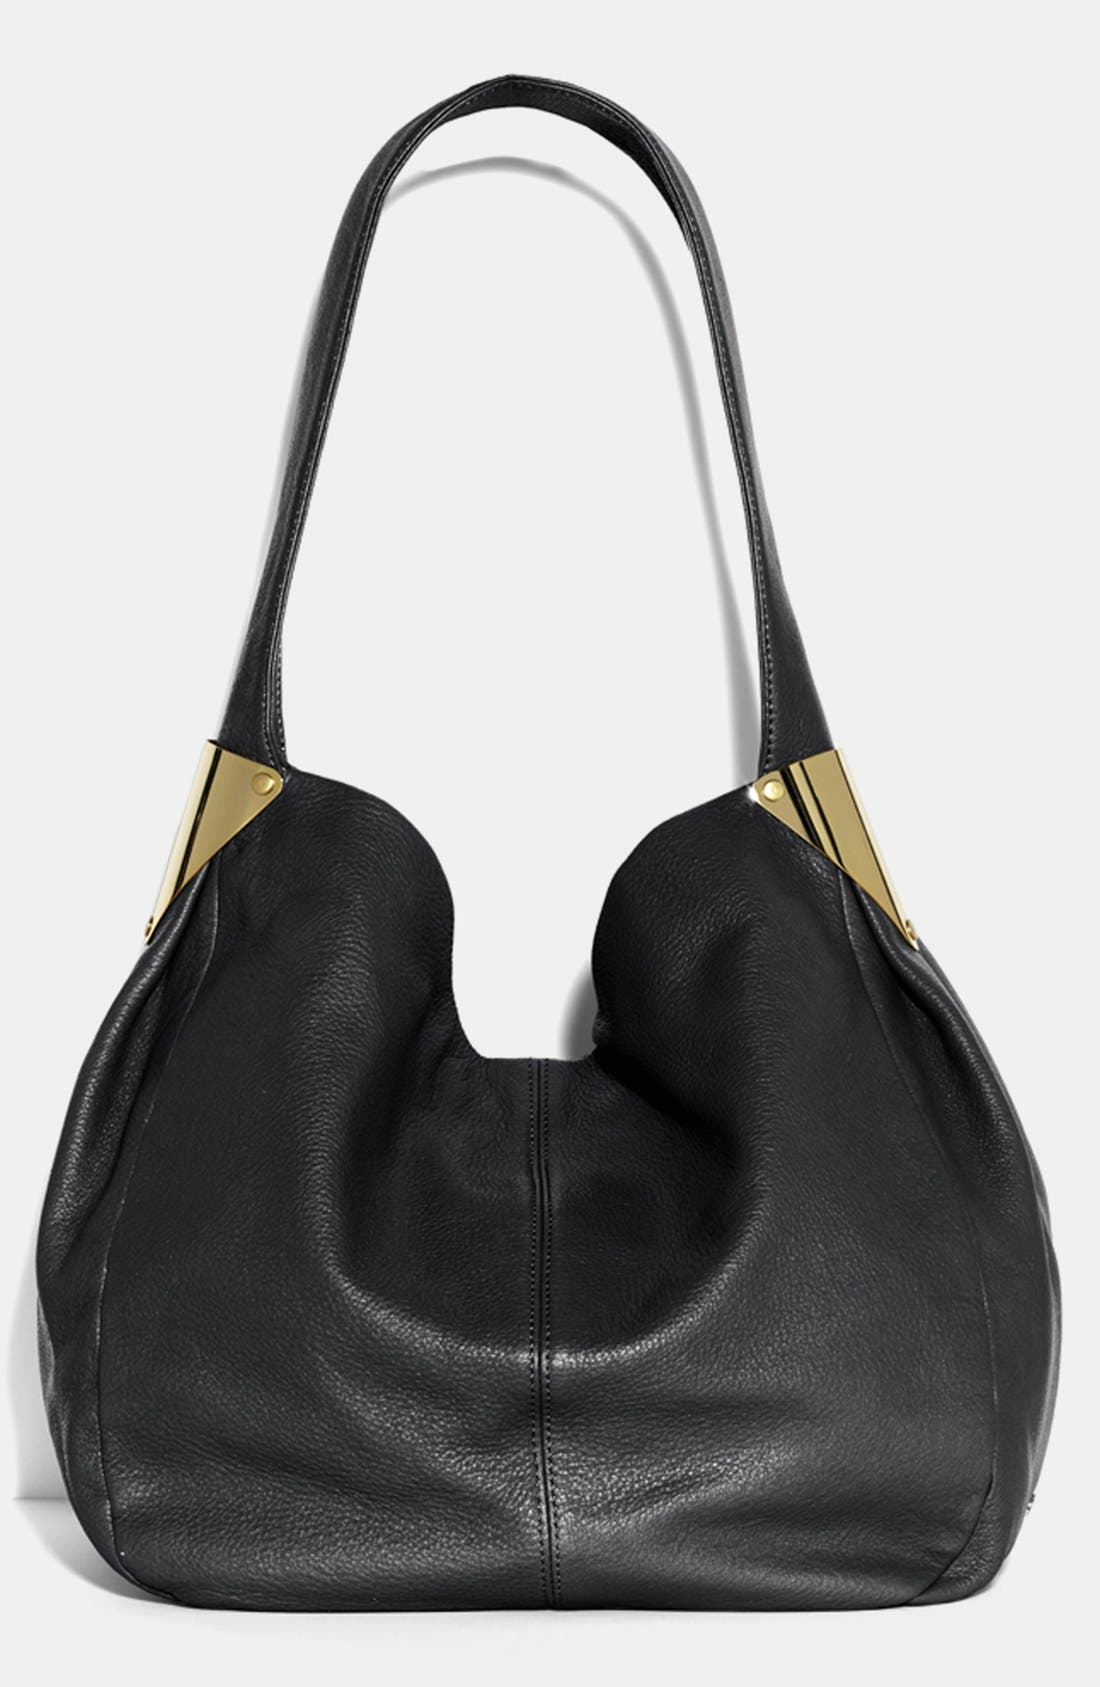 Alternate Image 1 Selected - Vince Camuto 'Grace' Leather Hobo